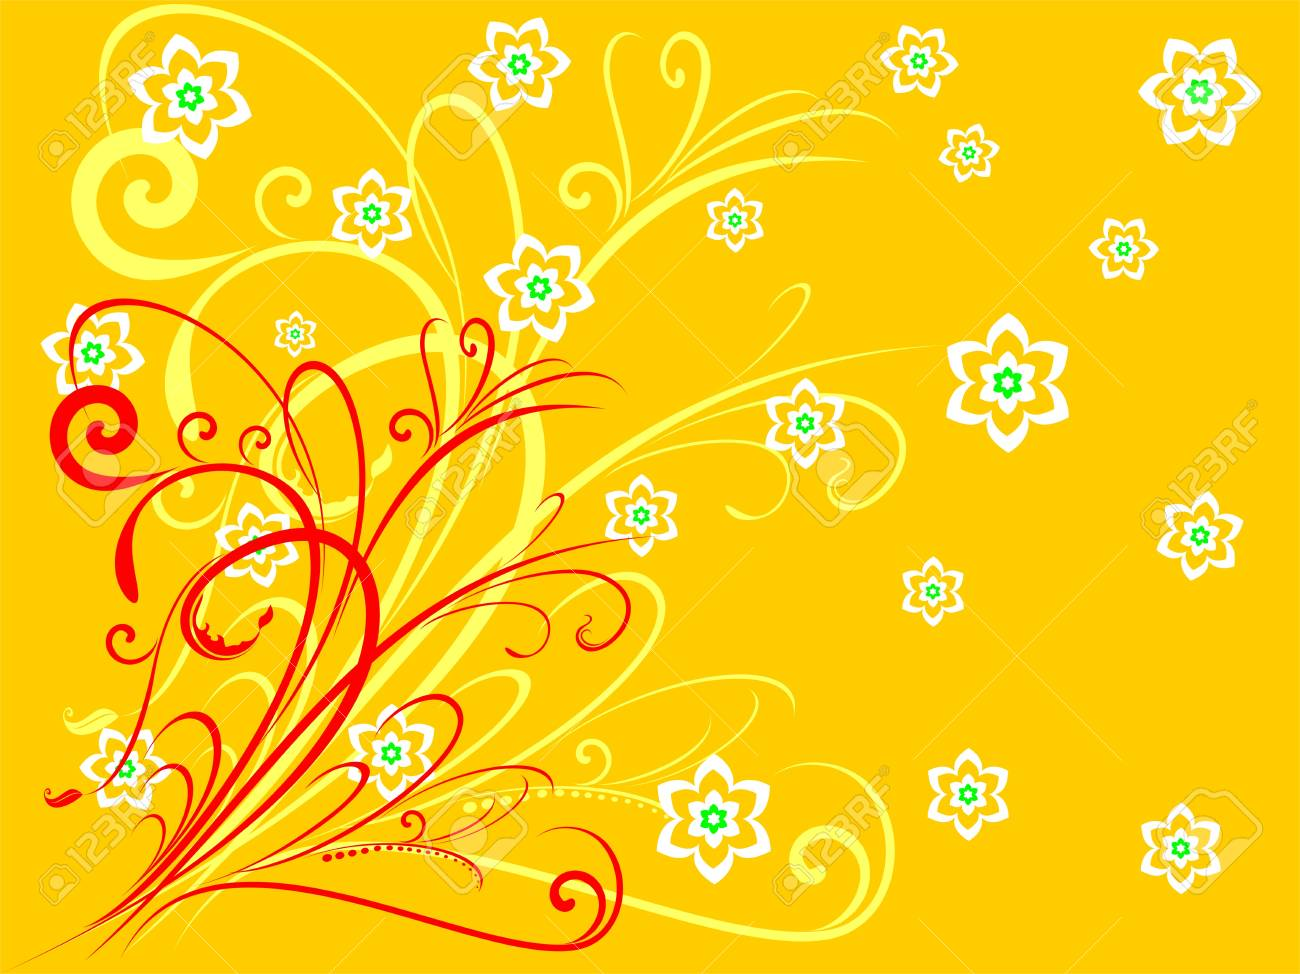 Abstract floral motif for background or wallpaper - 10729698